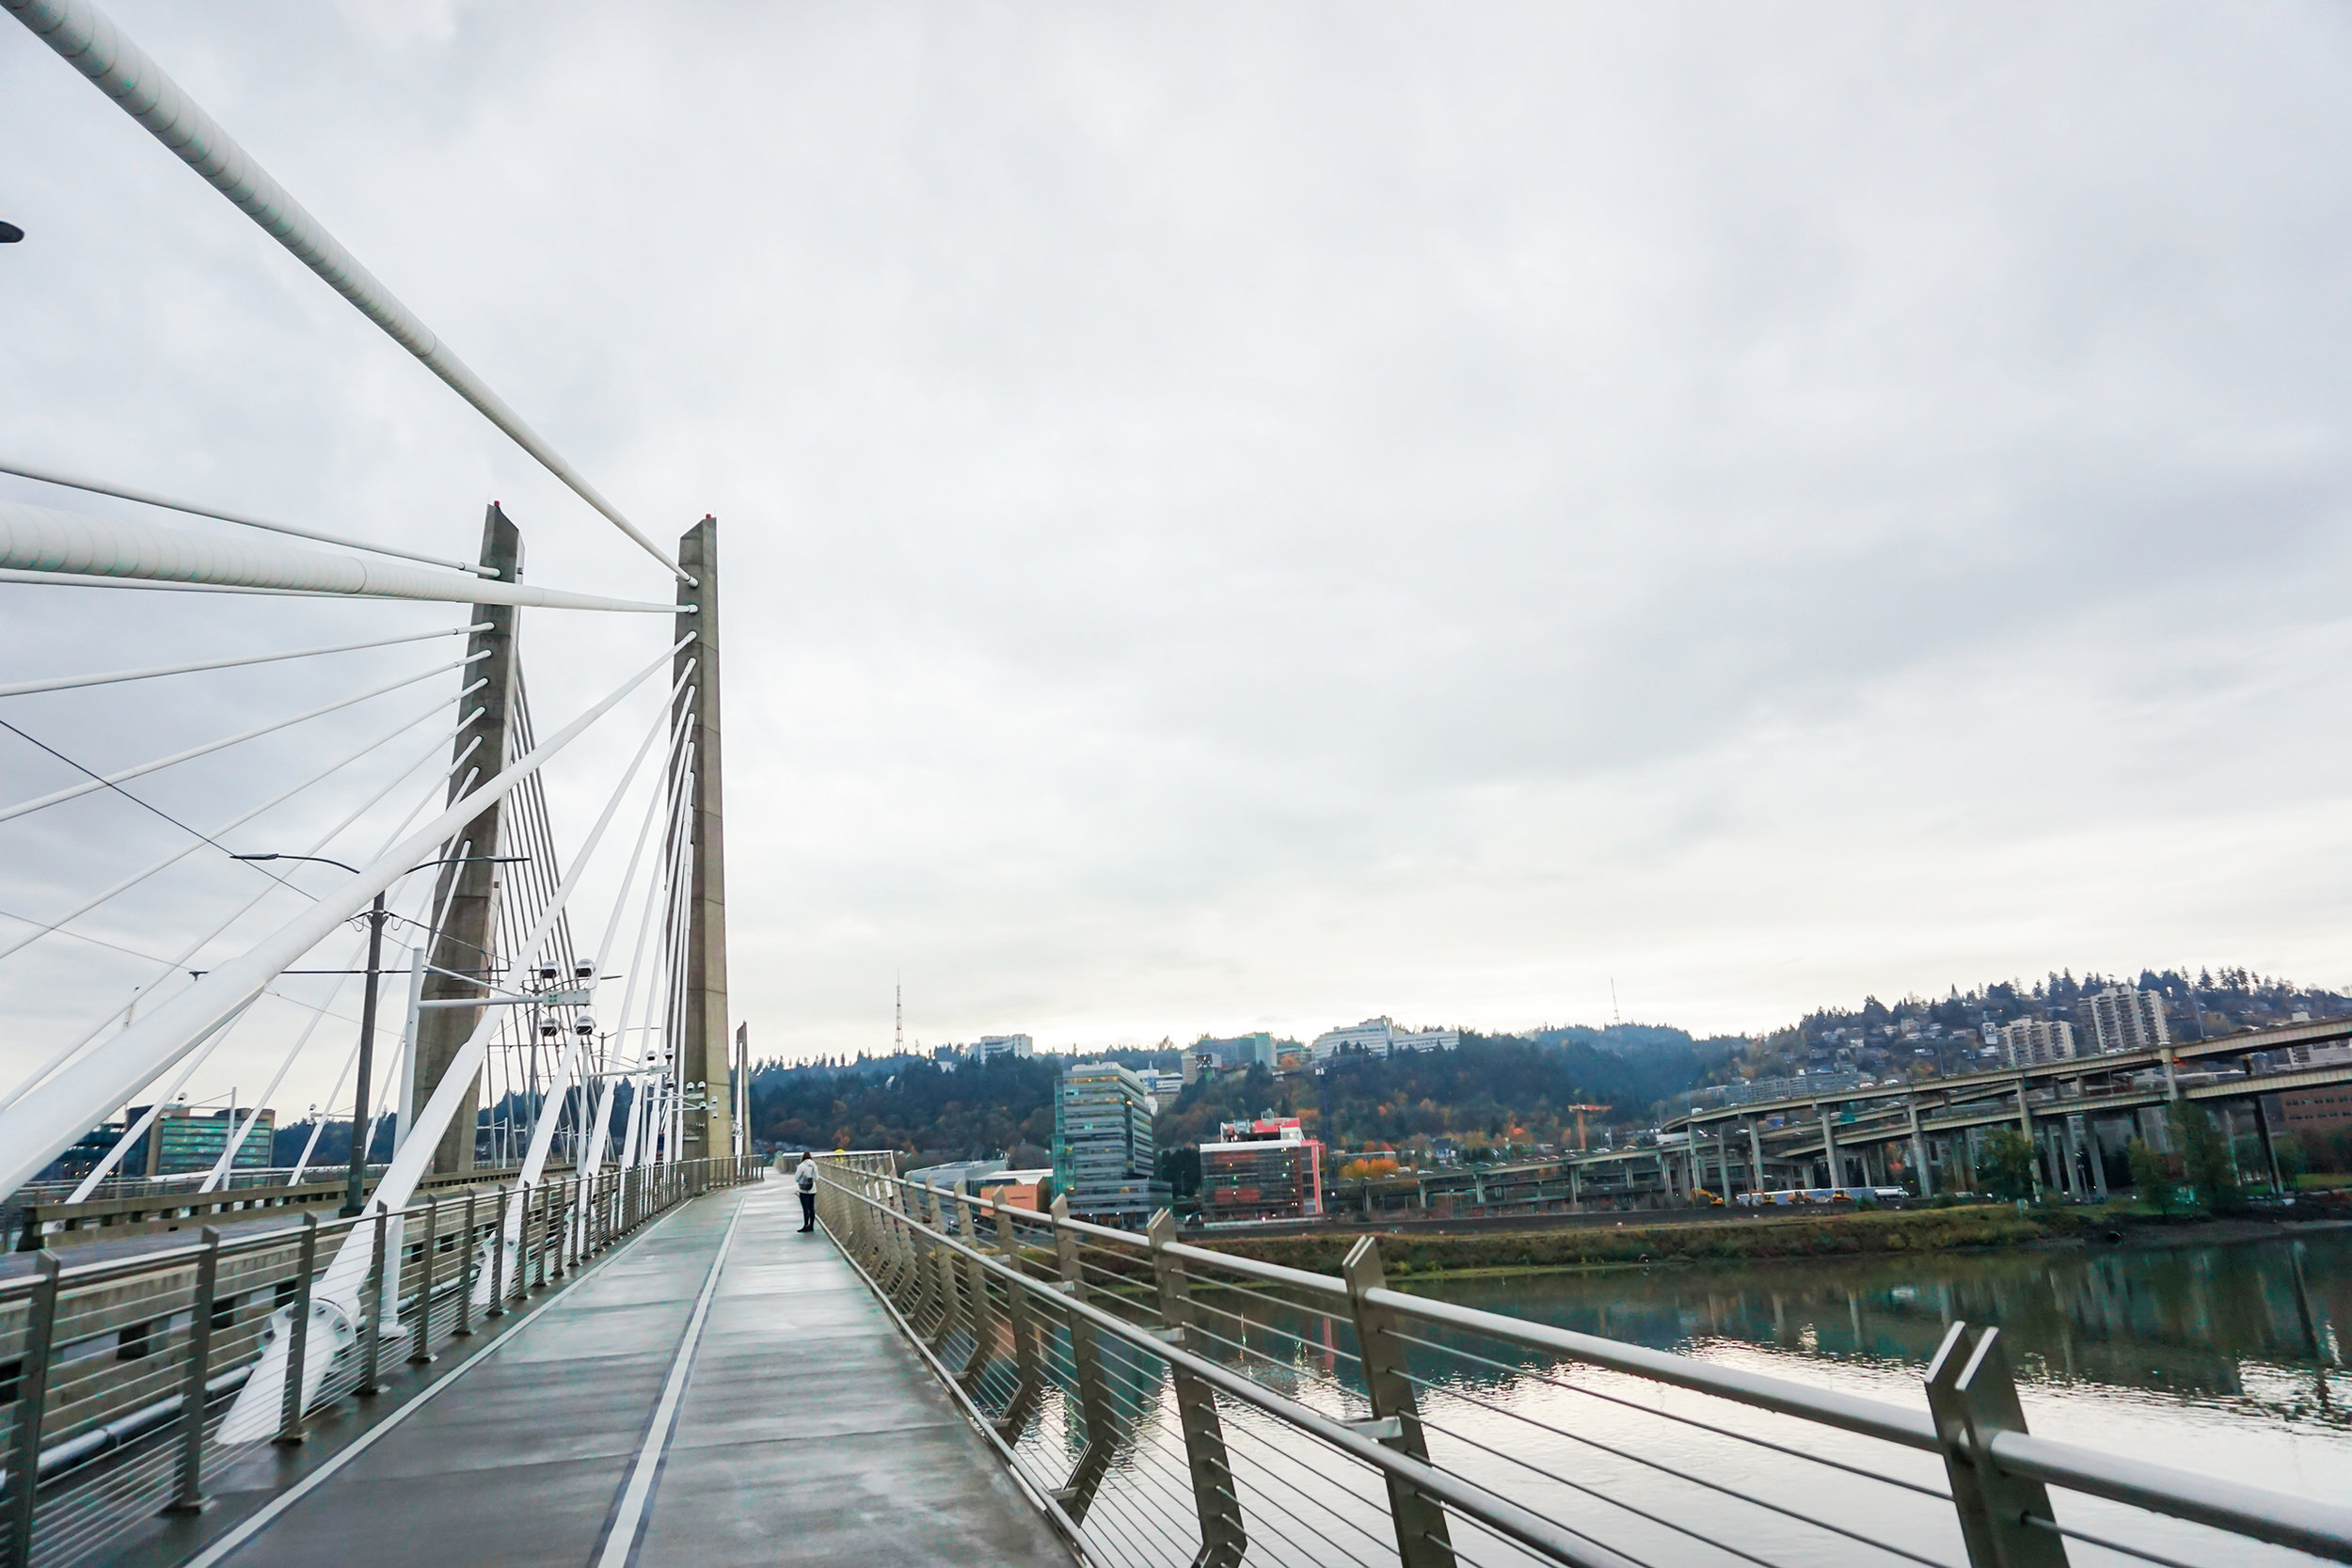 No cars allowed! Tilikum Crossing has the view of the Willamette you won't get anywhere else. Pop into OMSI afterwards to get your science on!